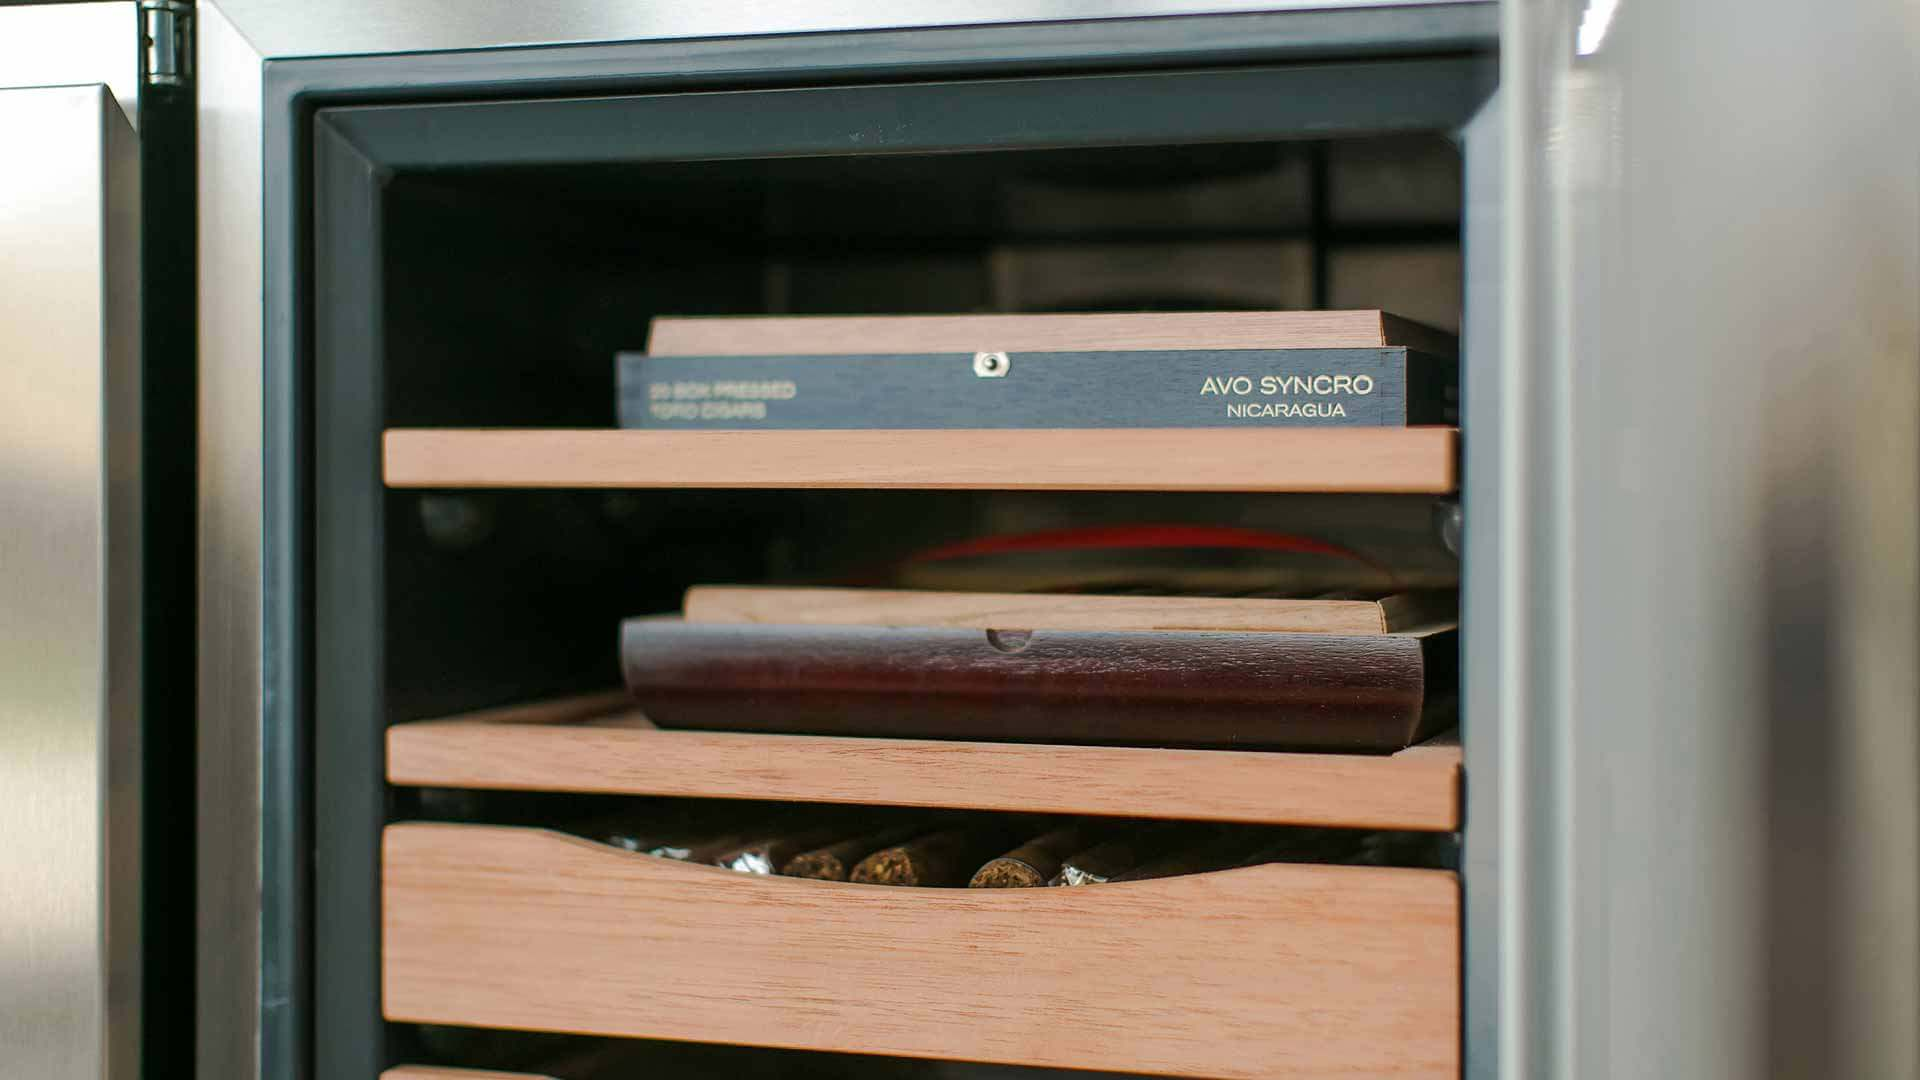 Humidor Detail - Cigar Room - Midcentury Modern Addition - Brendonwood, Indianapolis - Christopher Short, Paul Reynolds, Architects, HAUS | Architecture For Modern Lifestyles - WERK | Building Modern - Paul Reynolds, Project Manager